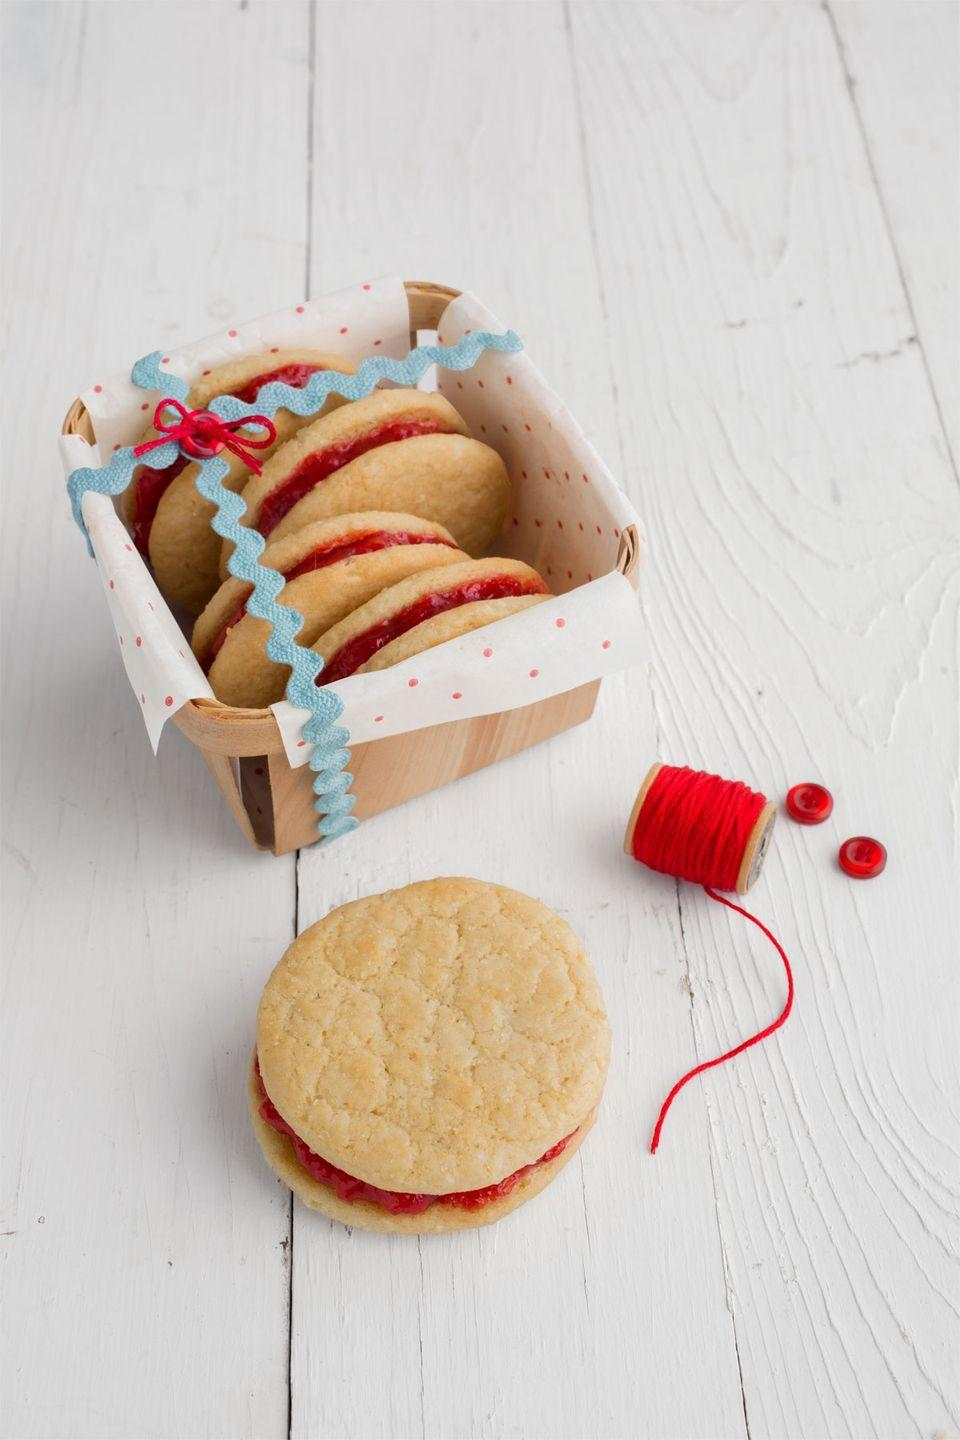 """<p>Line a berry basket with polka dot tissue paper and add cookies. Wrap with rickrack, and sew in place with a button and embroidery thread.</p><p><strong><a href=""""https://www.countryliving.com/food-drinks/recipes/a36898/biscuit-jam-cookies/"""" rel=""""nofollow noopener"""" target=""""_blank"""" data-ylk=""""slk:Get the recipe"""" class=""""link rapid-noclick-resp"""">Get the recipe</a>.</strong></p><p><a class=""""link rapid-noclick-resp"""" href=""""https://www.amazon.com/dp/B082WF6MG2/?tag=syn-yahoo-20&ascsubtag=%5Bartid%7C10050.g.647%5Bsrc%7Cyahoo-us"""" rel=""""nofollow noopener"""" target=""""_blank"""" data-ylk=""""slk:SHOP ROLLING PINS"""">SHOP ROLLING PINS</a></p>"""